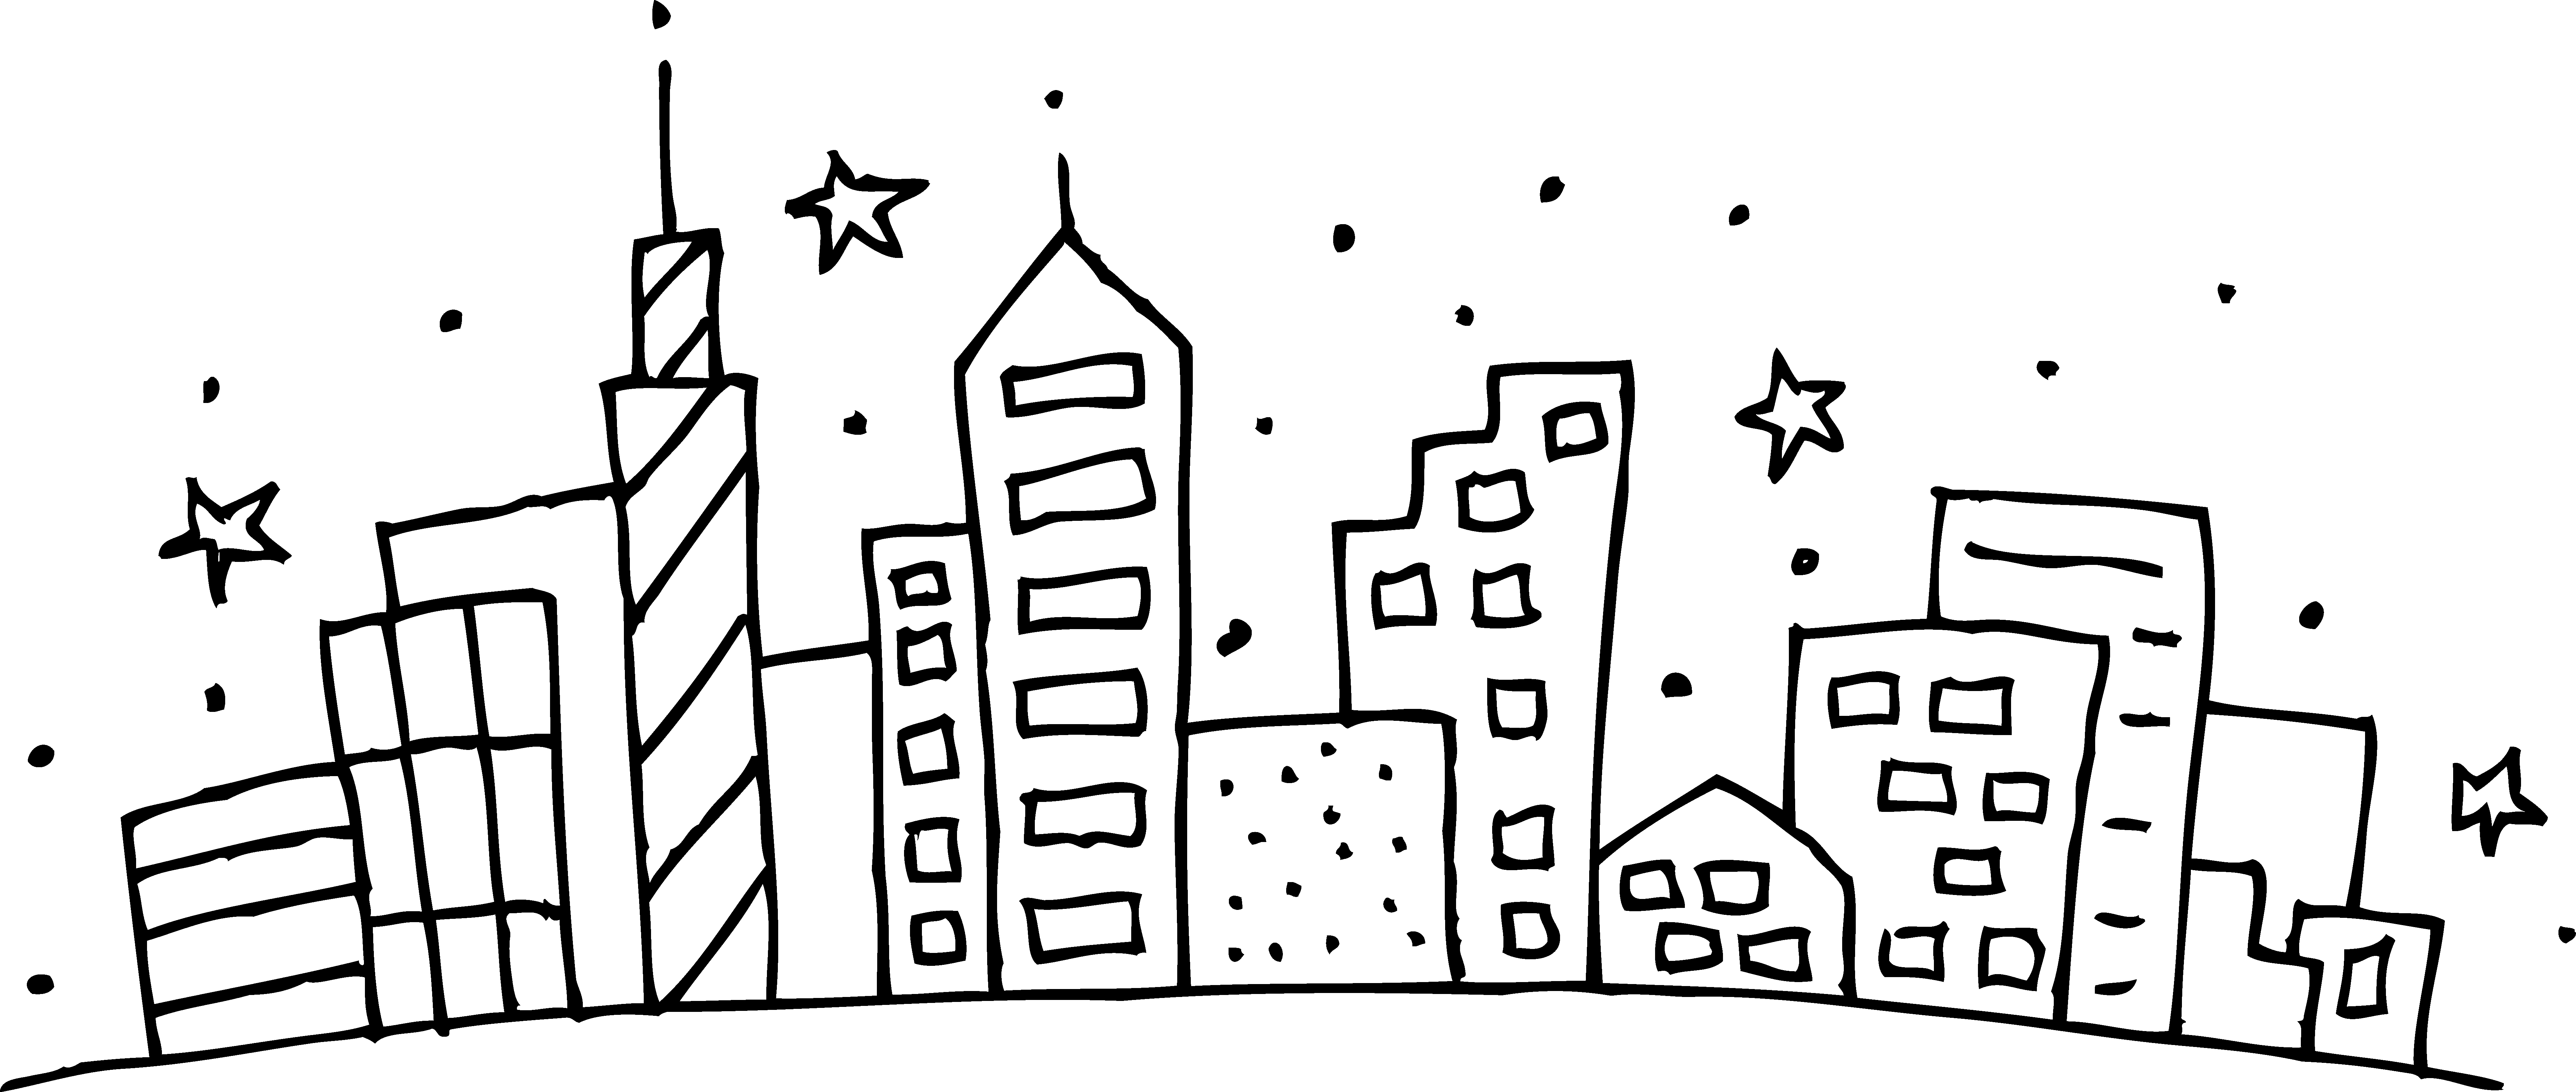 Building Coloring Page Cityscape Coloring Page Free Clip Art